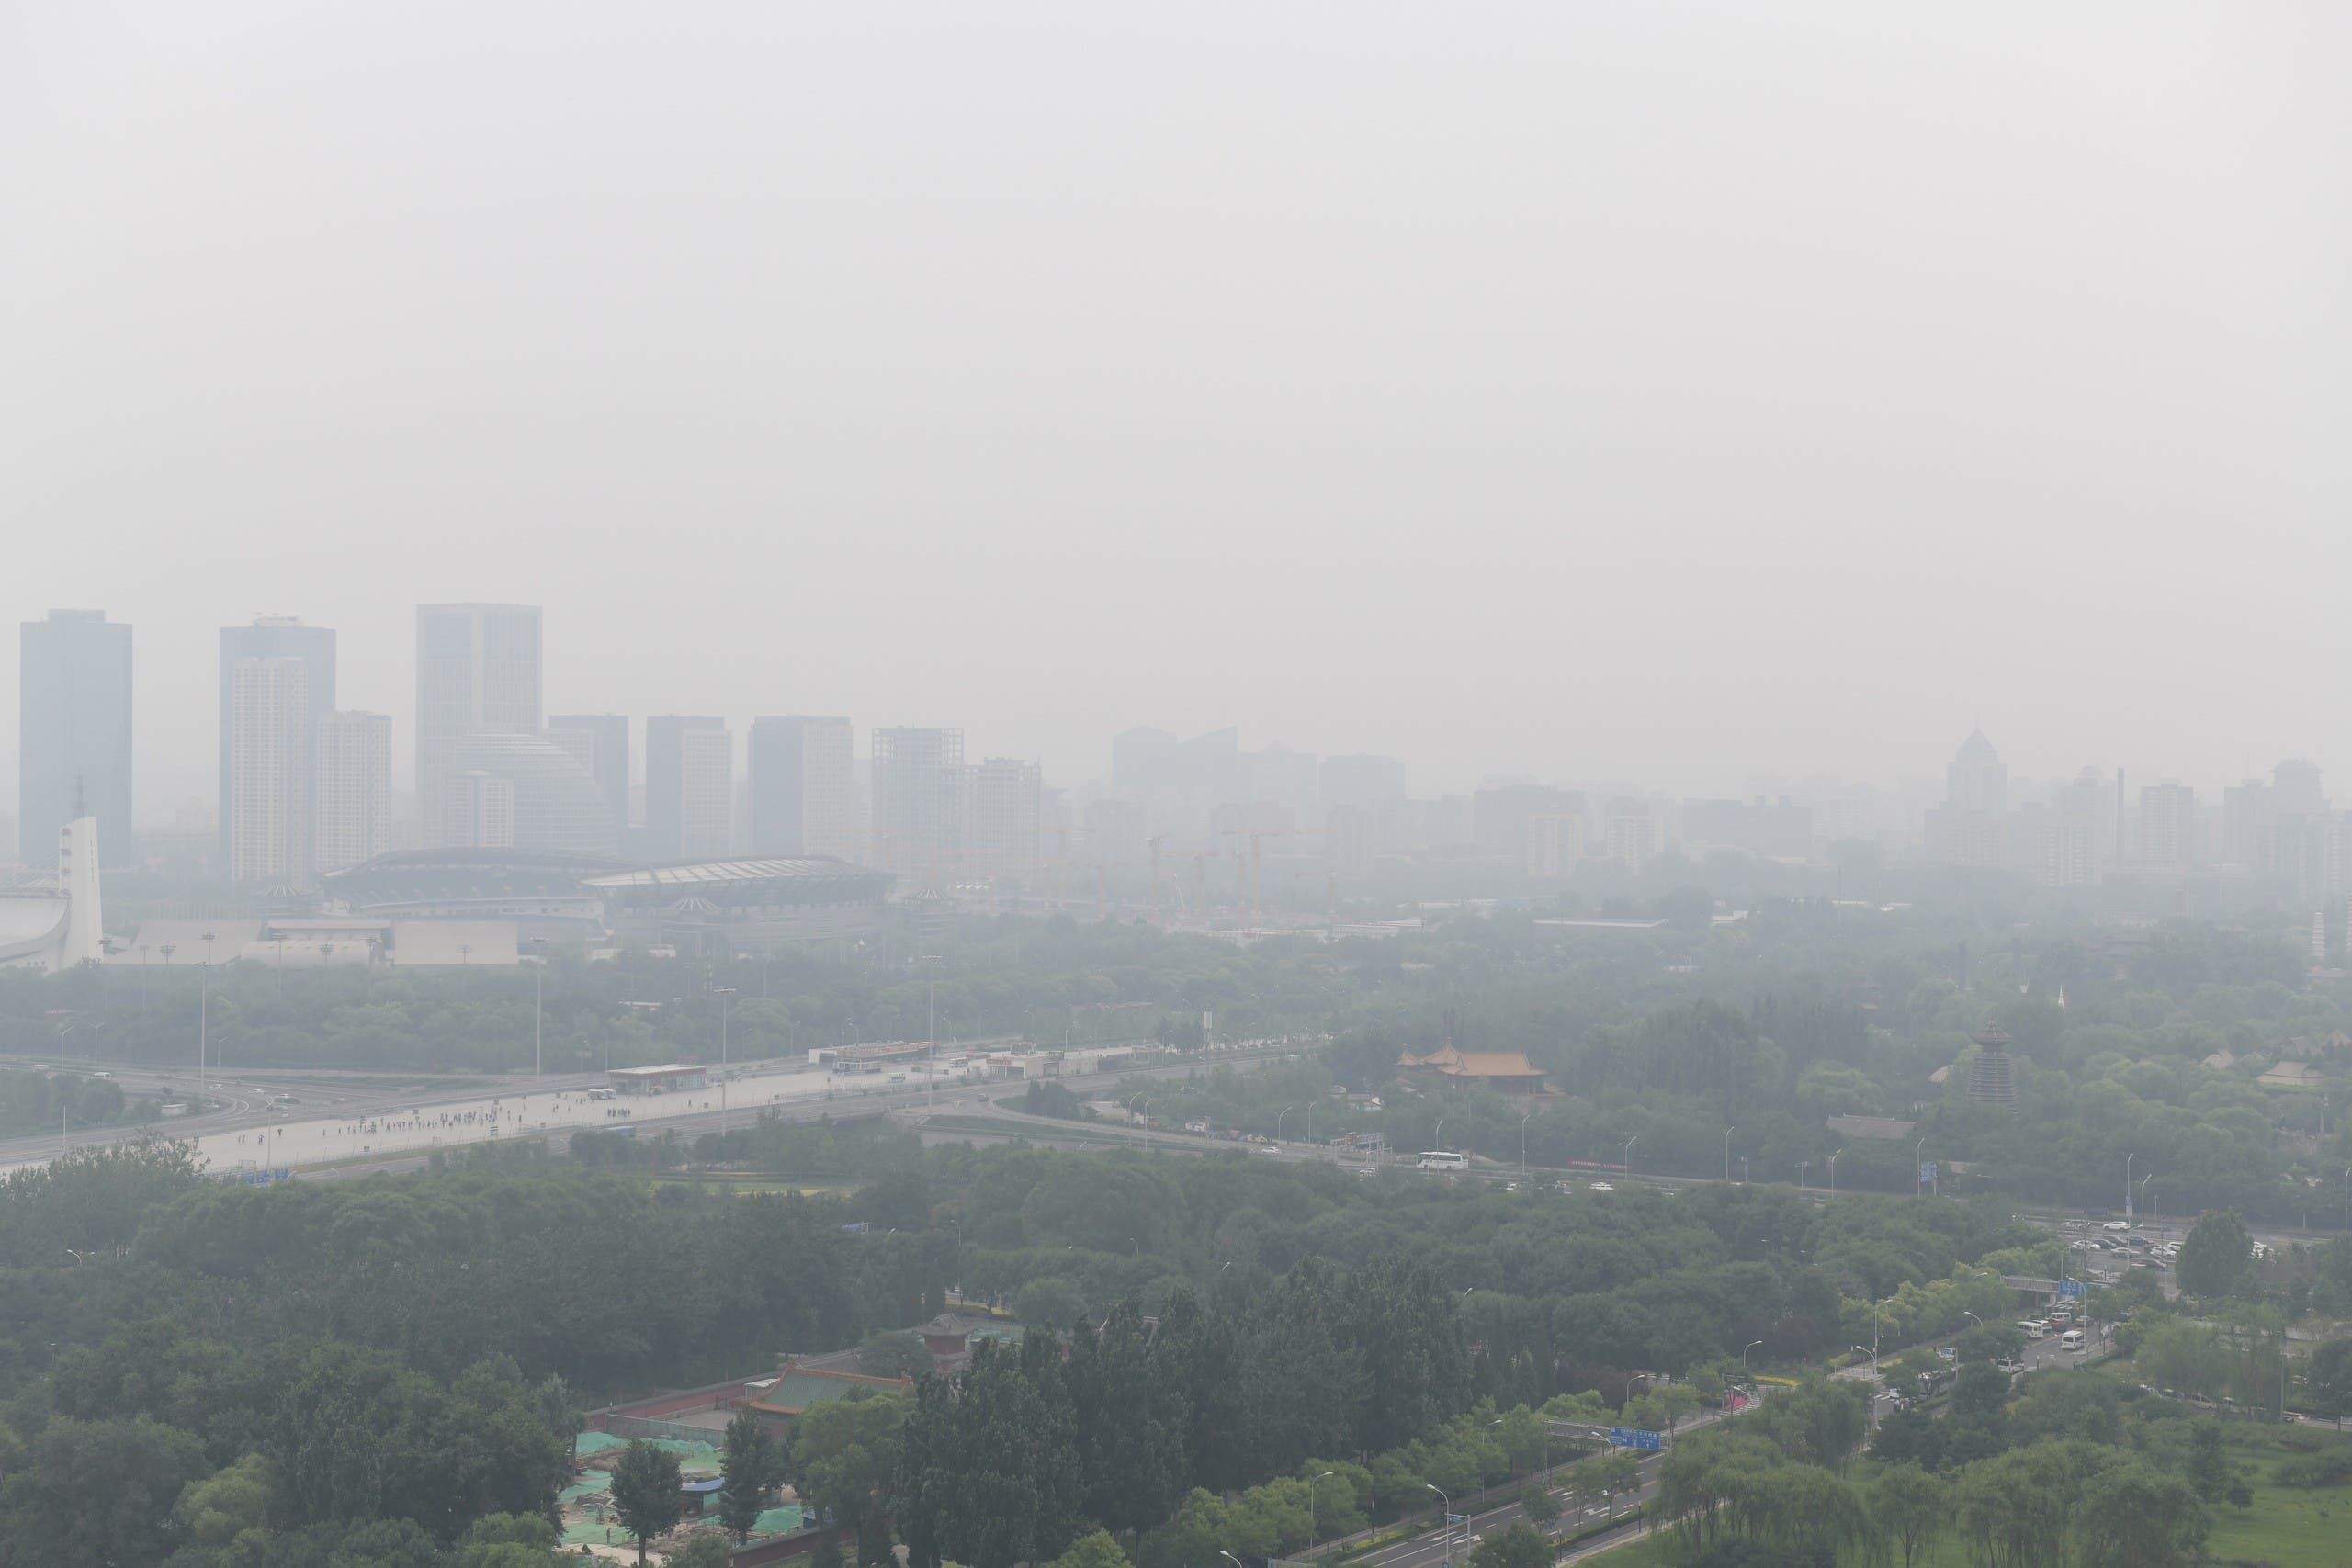 Yu Wensheng became well-known for suing the Beijing (pictured) government over the city's chronic air pollution. (File photo: AFP)